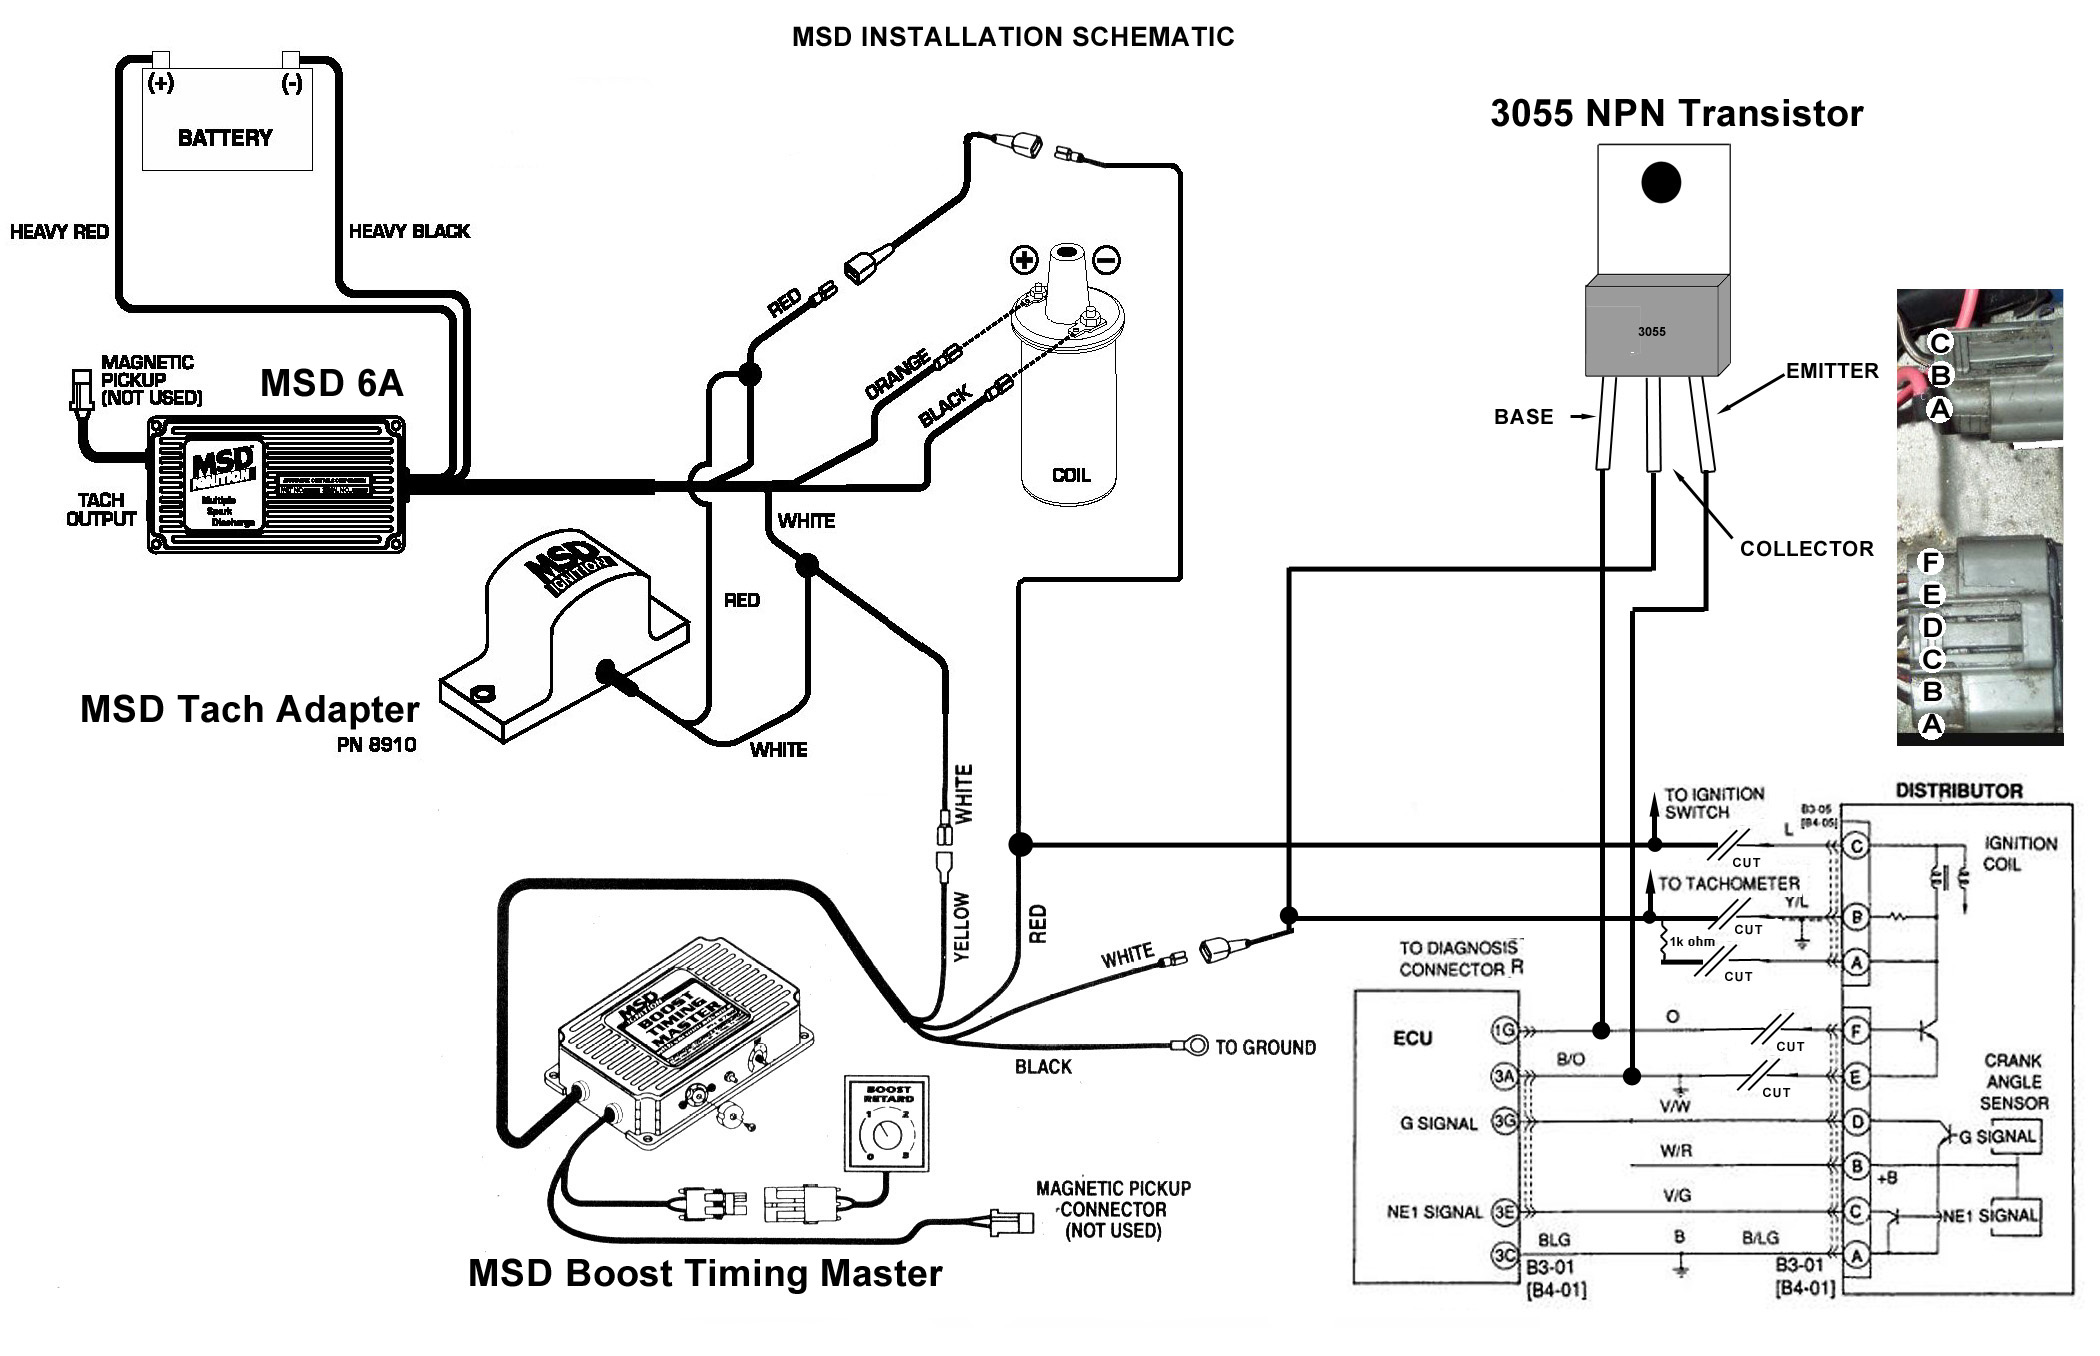 Wiring Diagram Together With 1993 Mazda Mx6 On 1991 Miata 2002 Protege Radio Msd Mx 6 Forum Rh Com